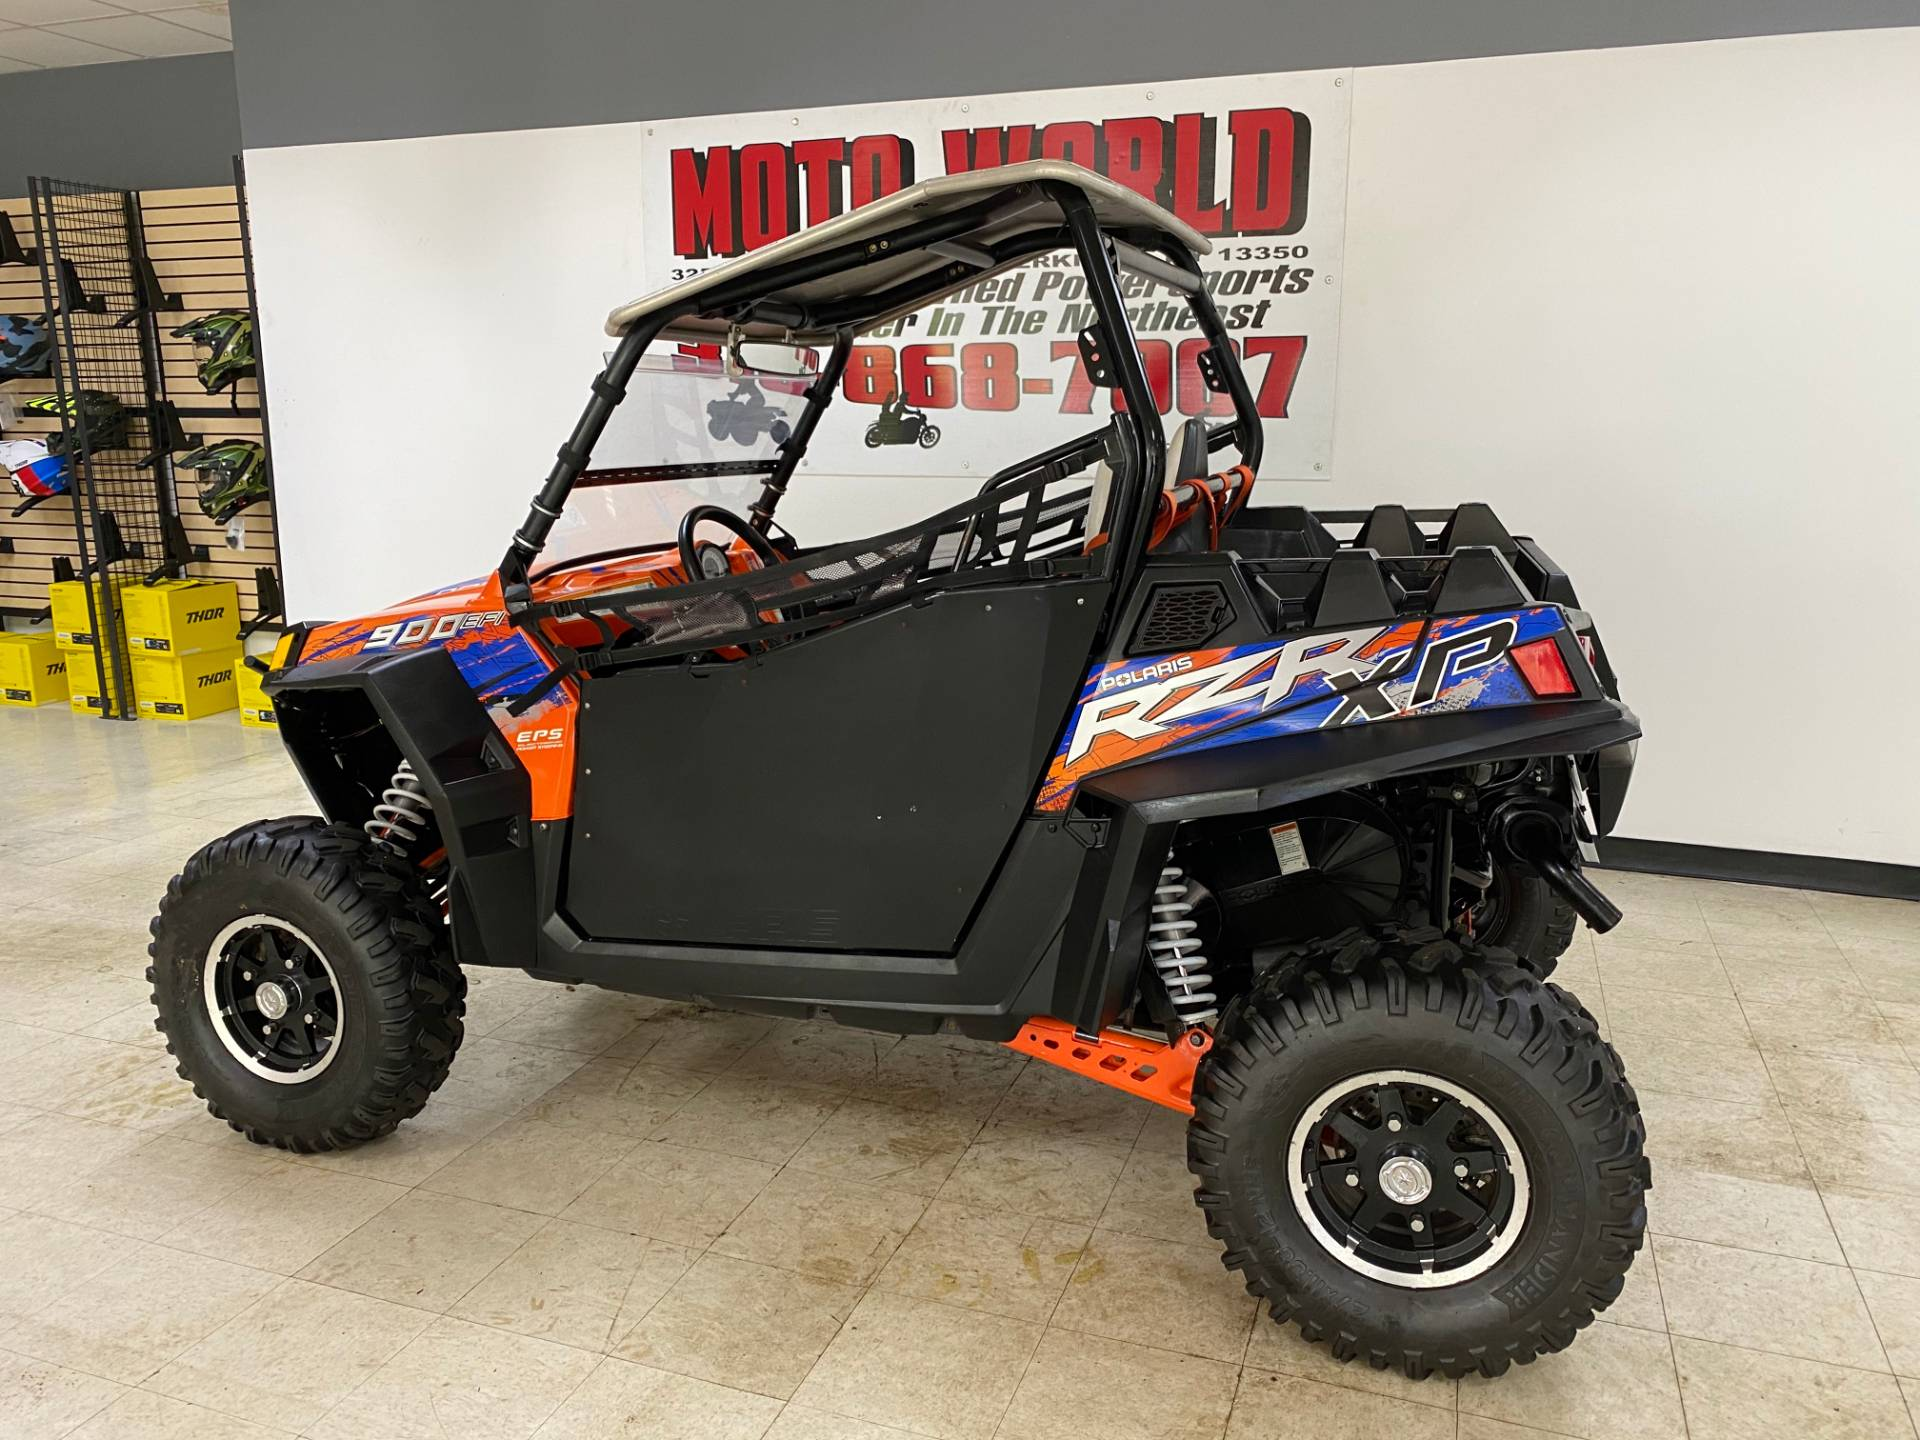 2013 Polaris RZR® XP 900 EPS LE in Herkimer, New York - Photo 3